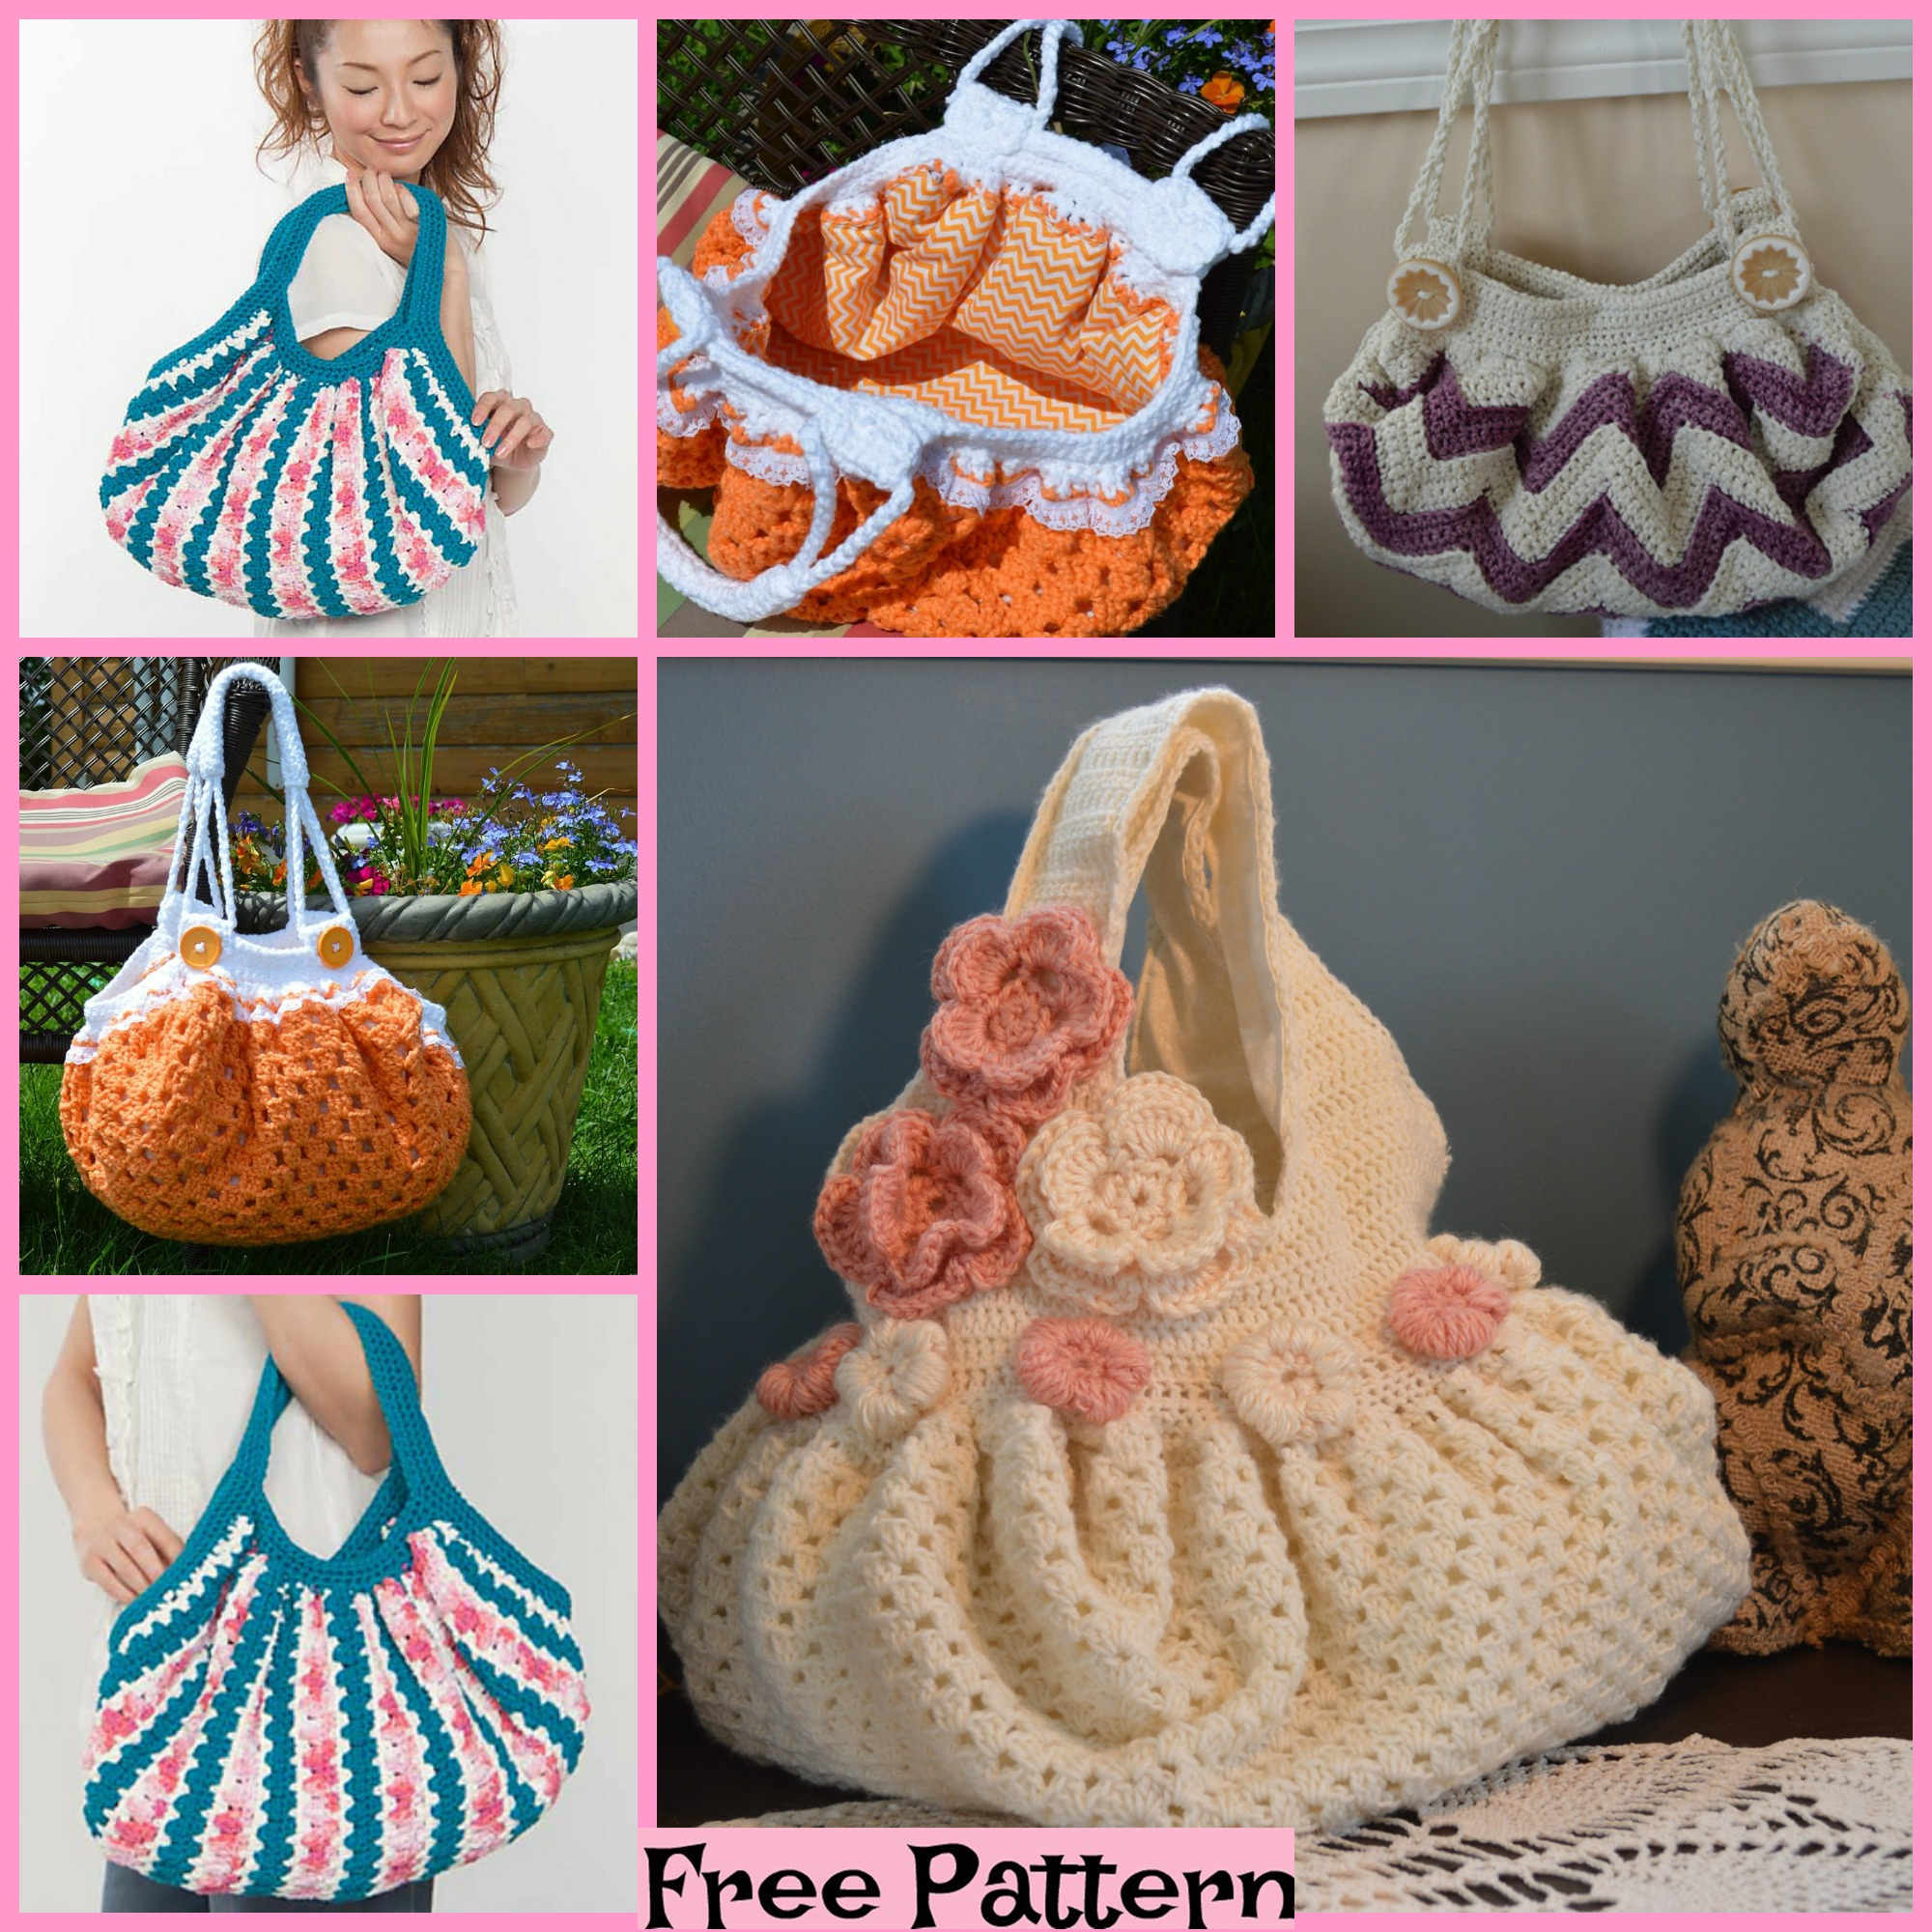 diy4ever-Crochet Unique Bags - Free Patterns